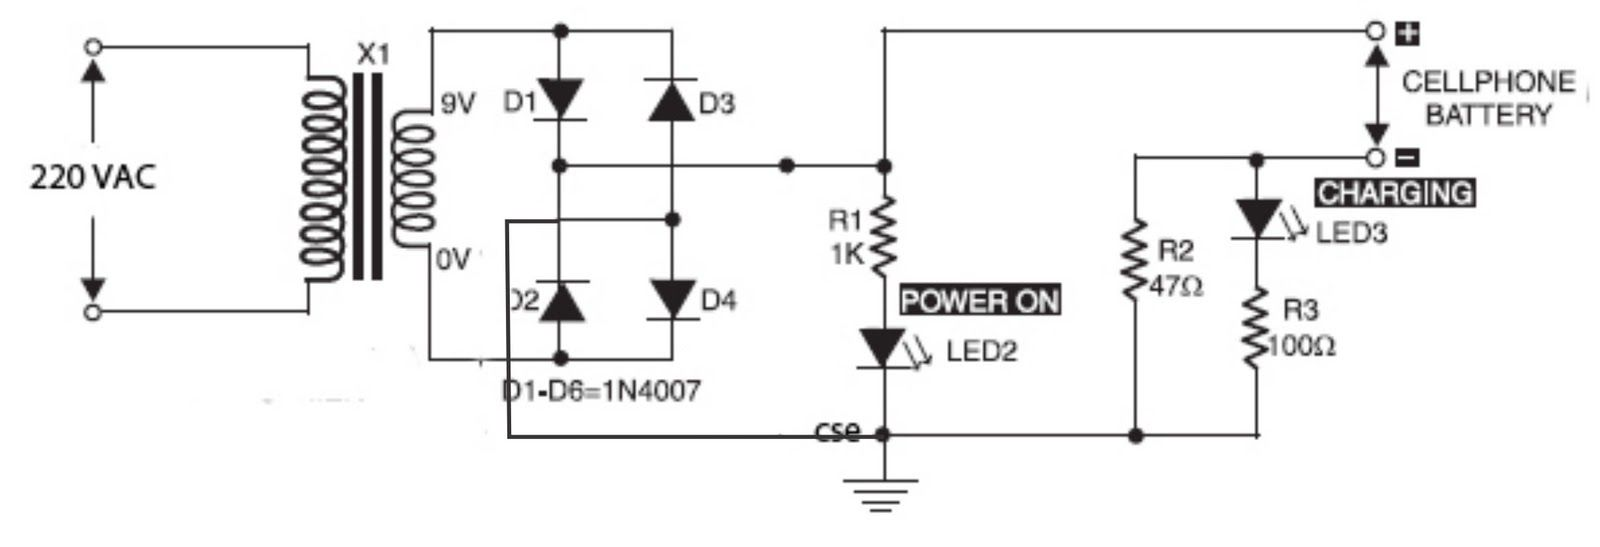 simple rapid battery charger circuit diagram electronic circuit mobile battery charger circuit diagram electronic circuit diagrams [ 1600 x 547 Pixel ]